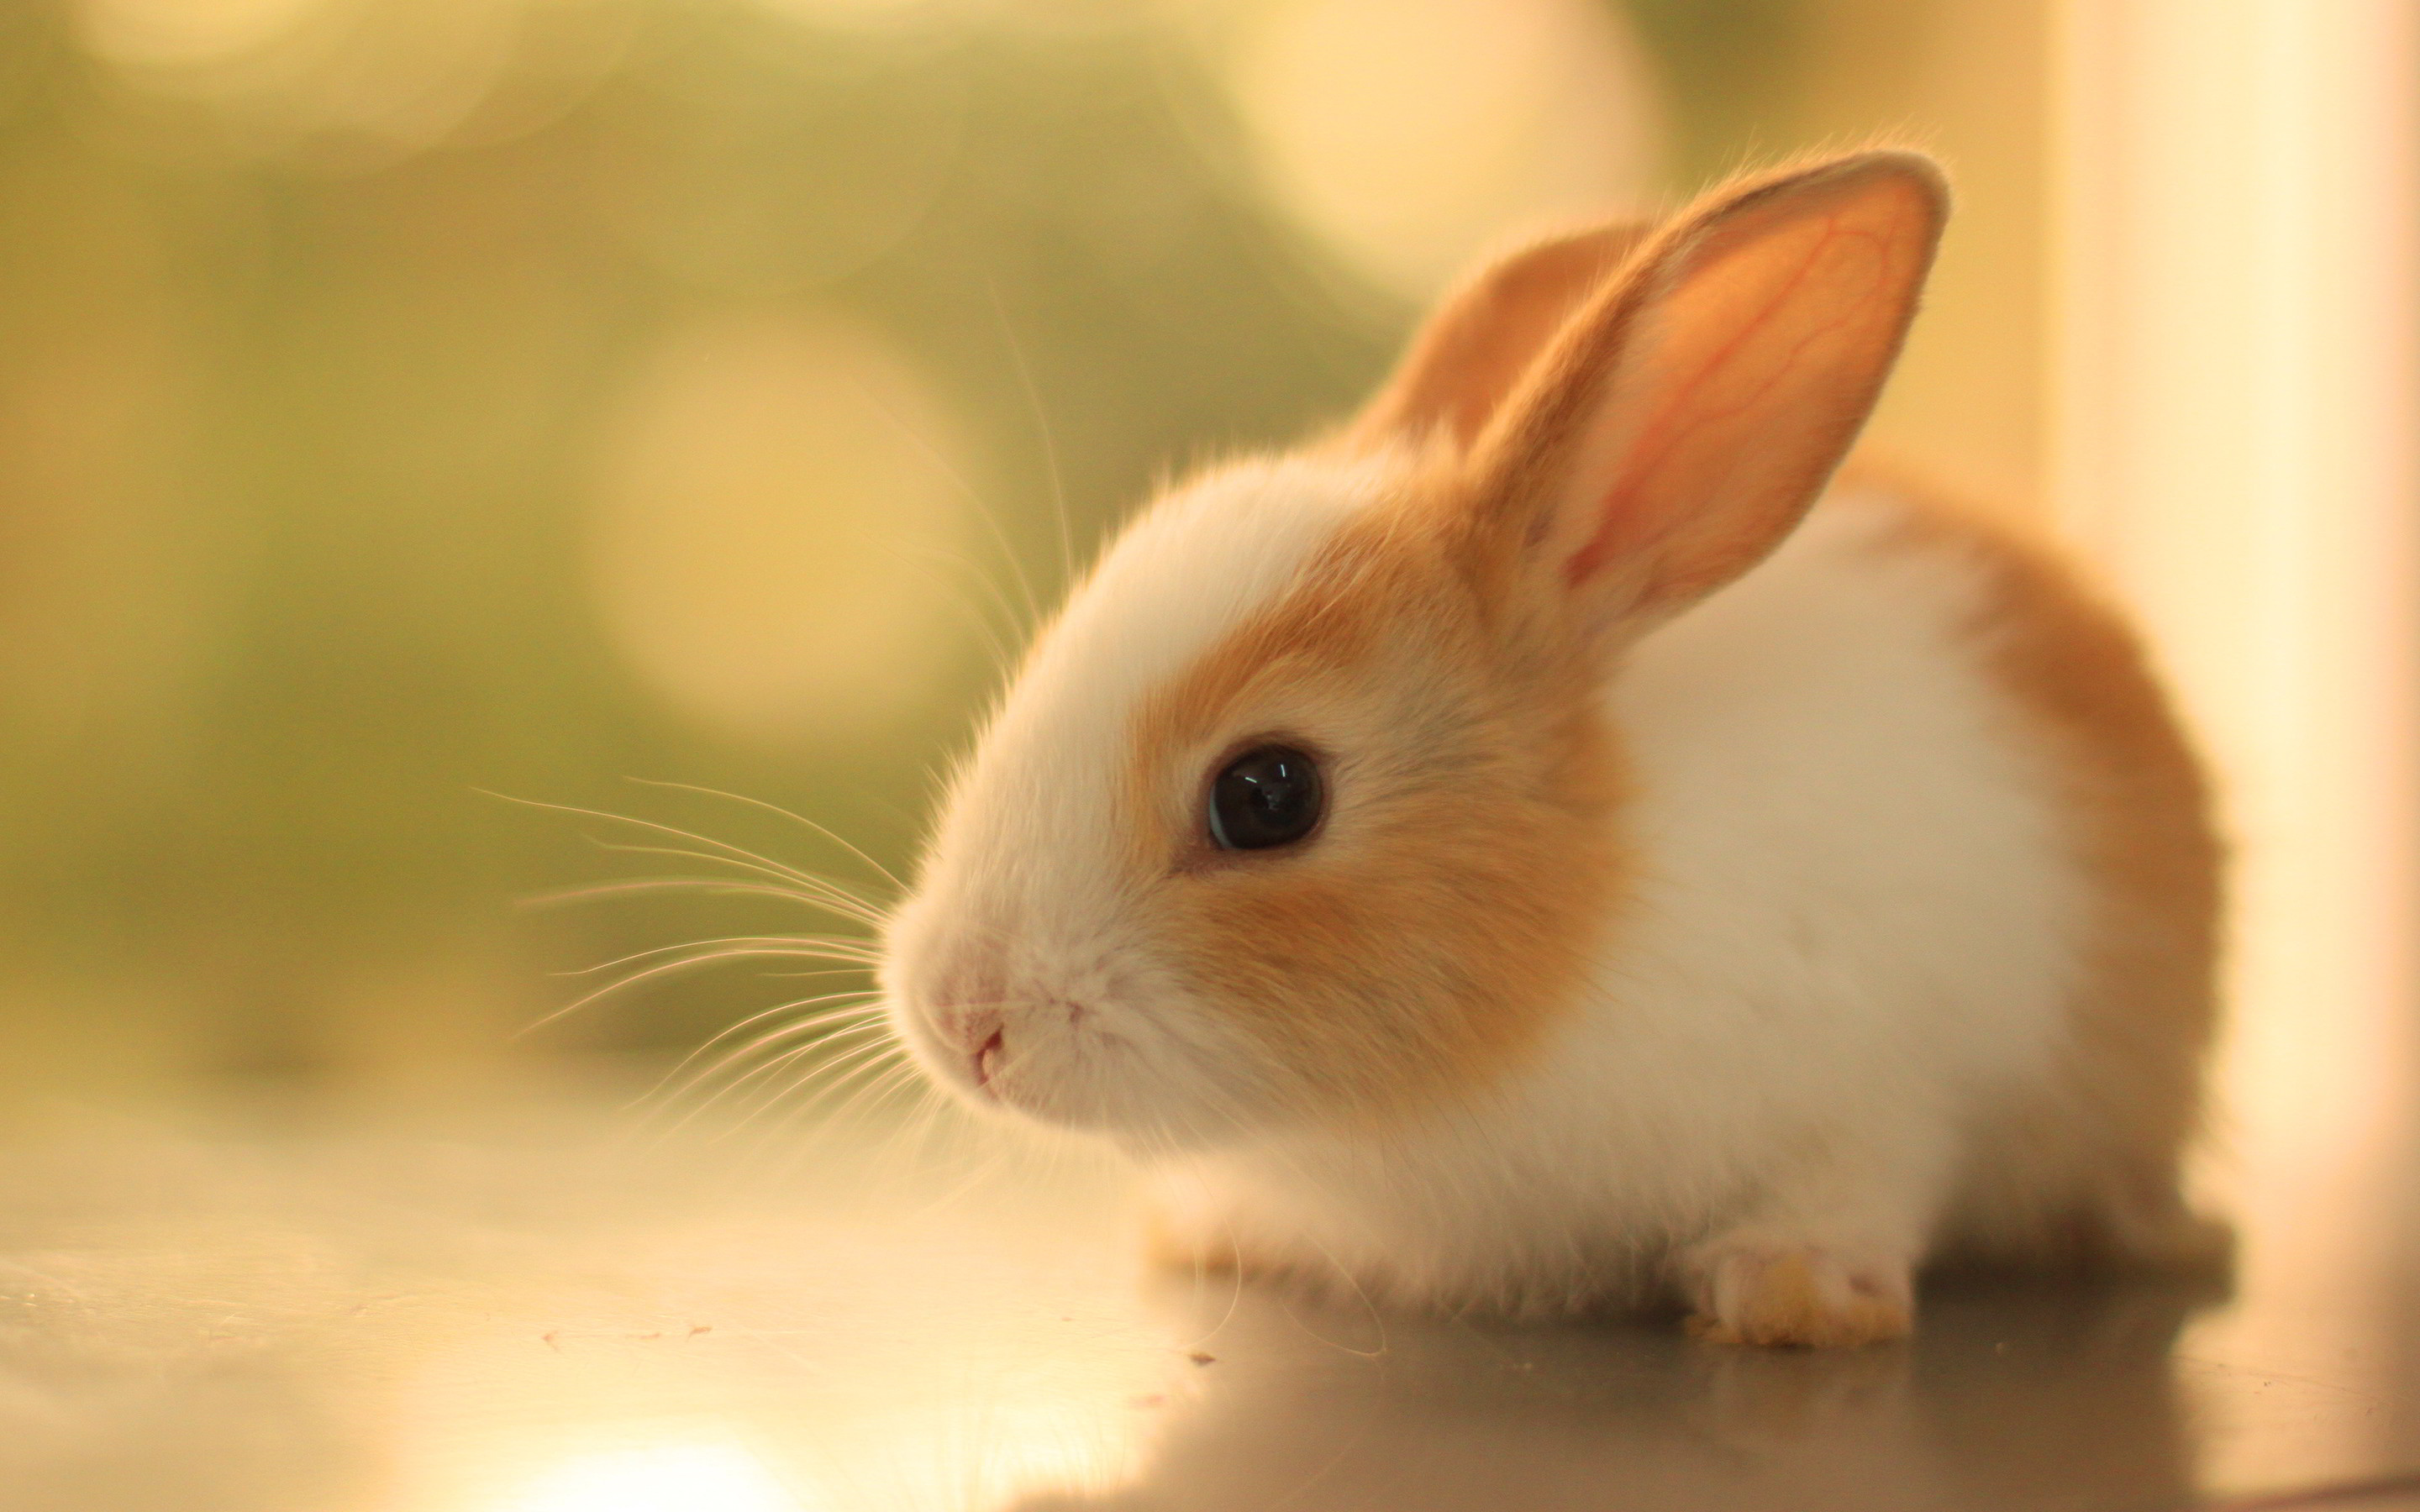 Cute Bunny Wallpapers Wallpapertag